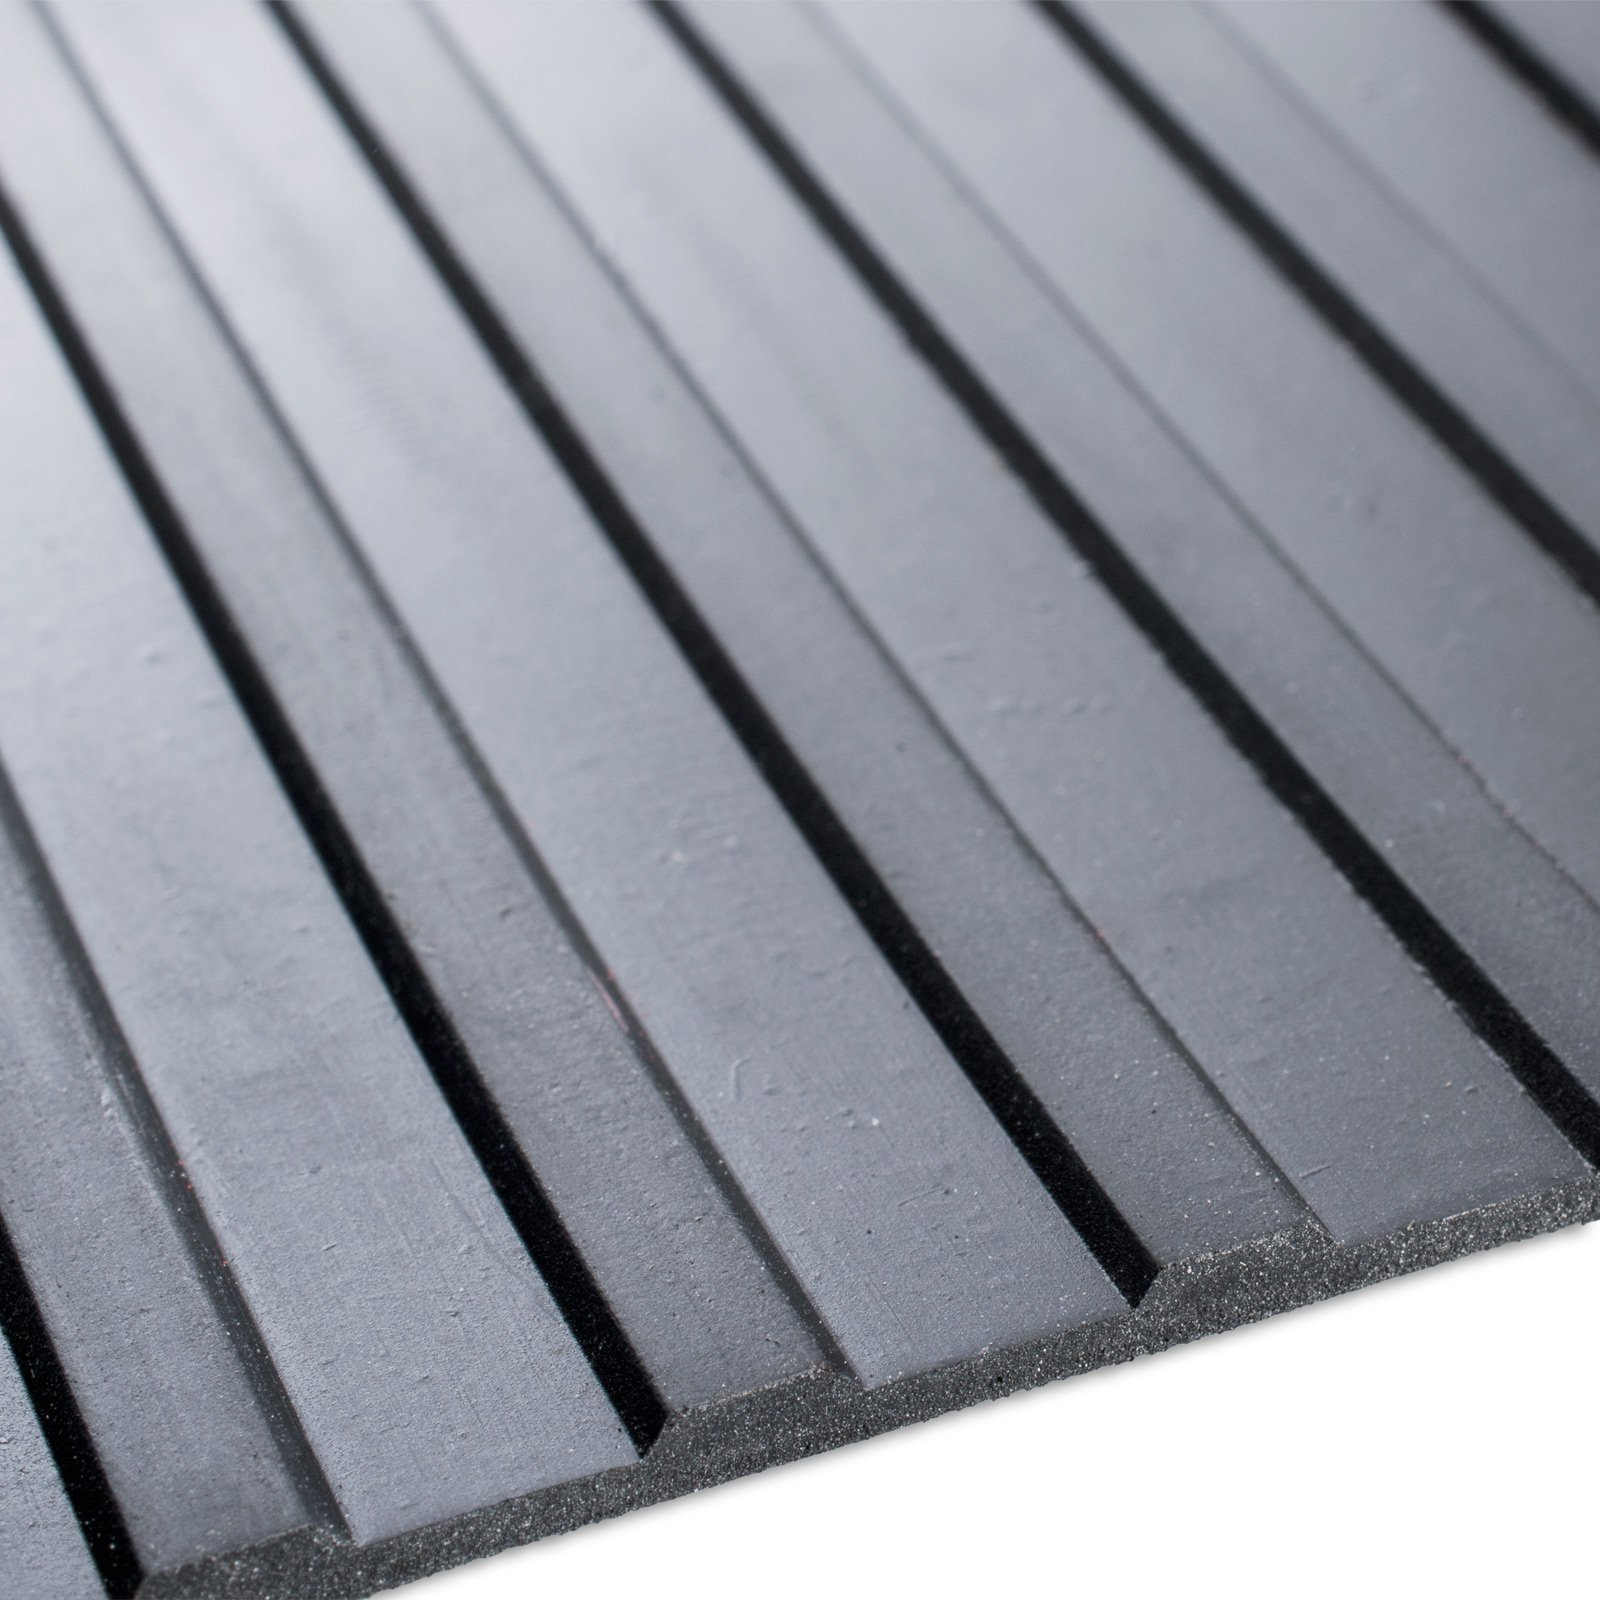 casa pura Rubber Floor Mat – Anti Slip Rubber Sheet   Suitable as Garage Floor Mat, Horse Stall Mat or Workbench Mat   Many Sizes to Choose from   Wide Ribbed   1/4'' Thick - 40'' x 4' by casa pura (Image #1)